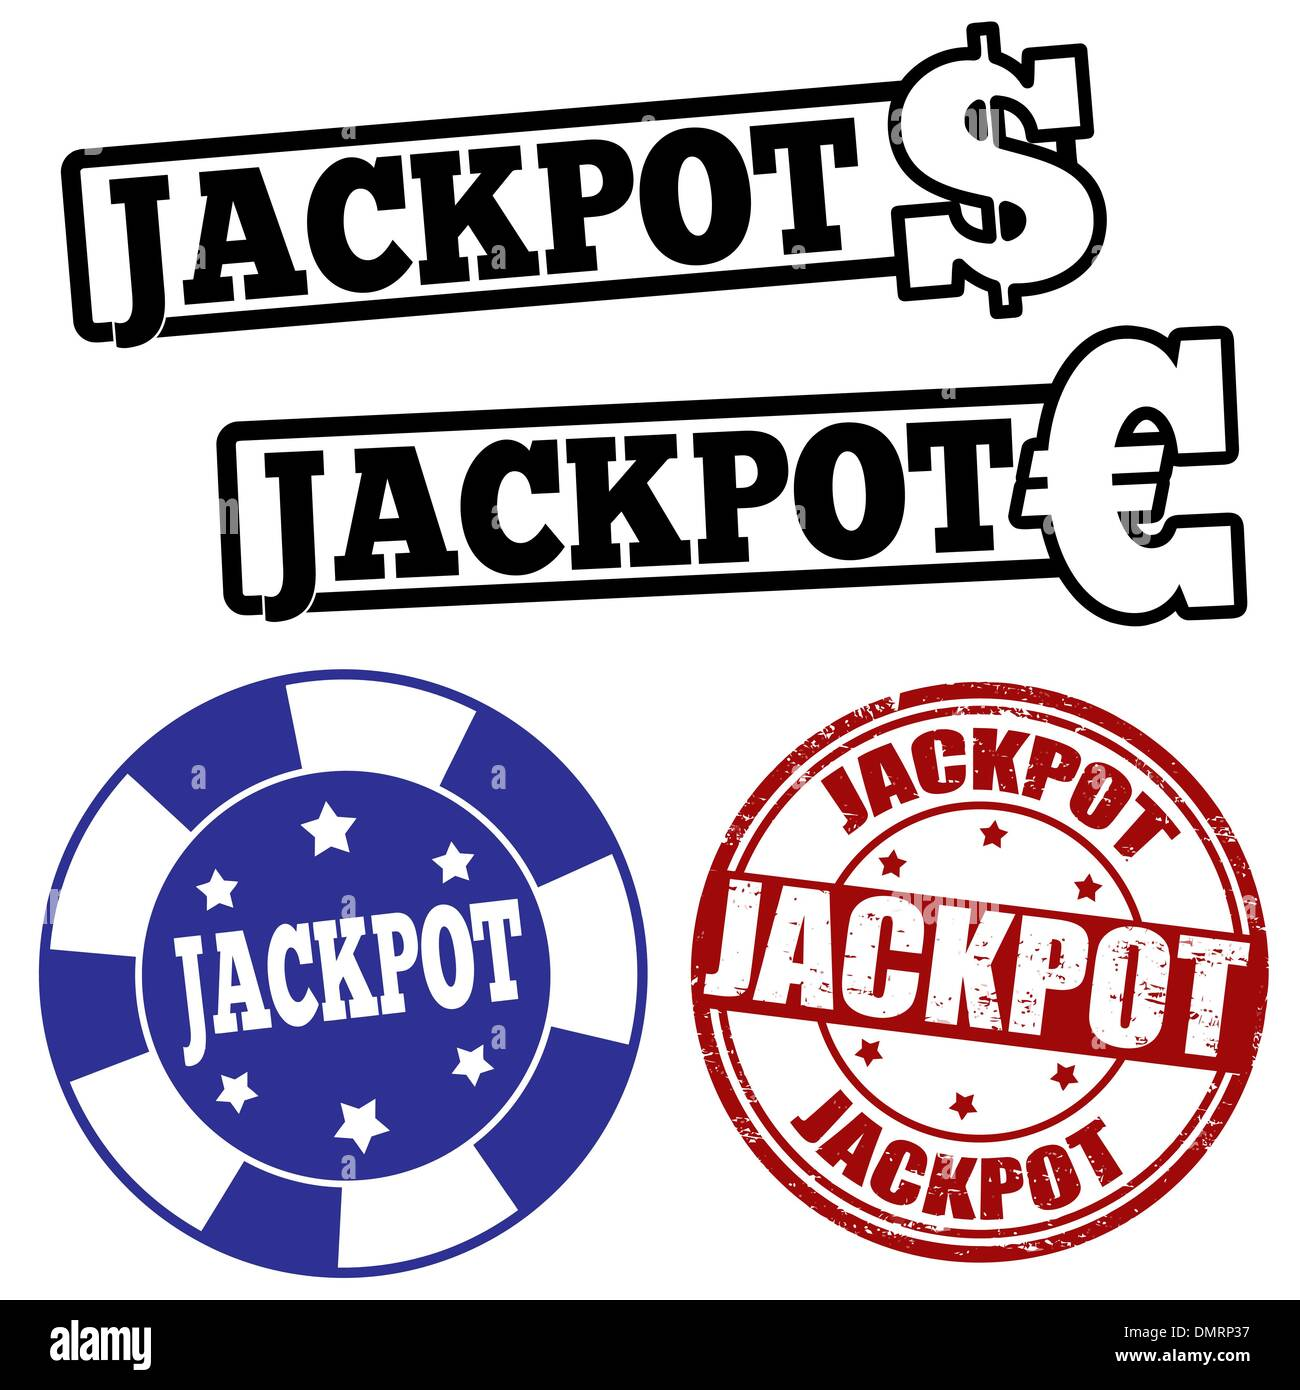 Set of jackpot stamps - Stock Image